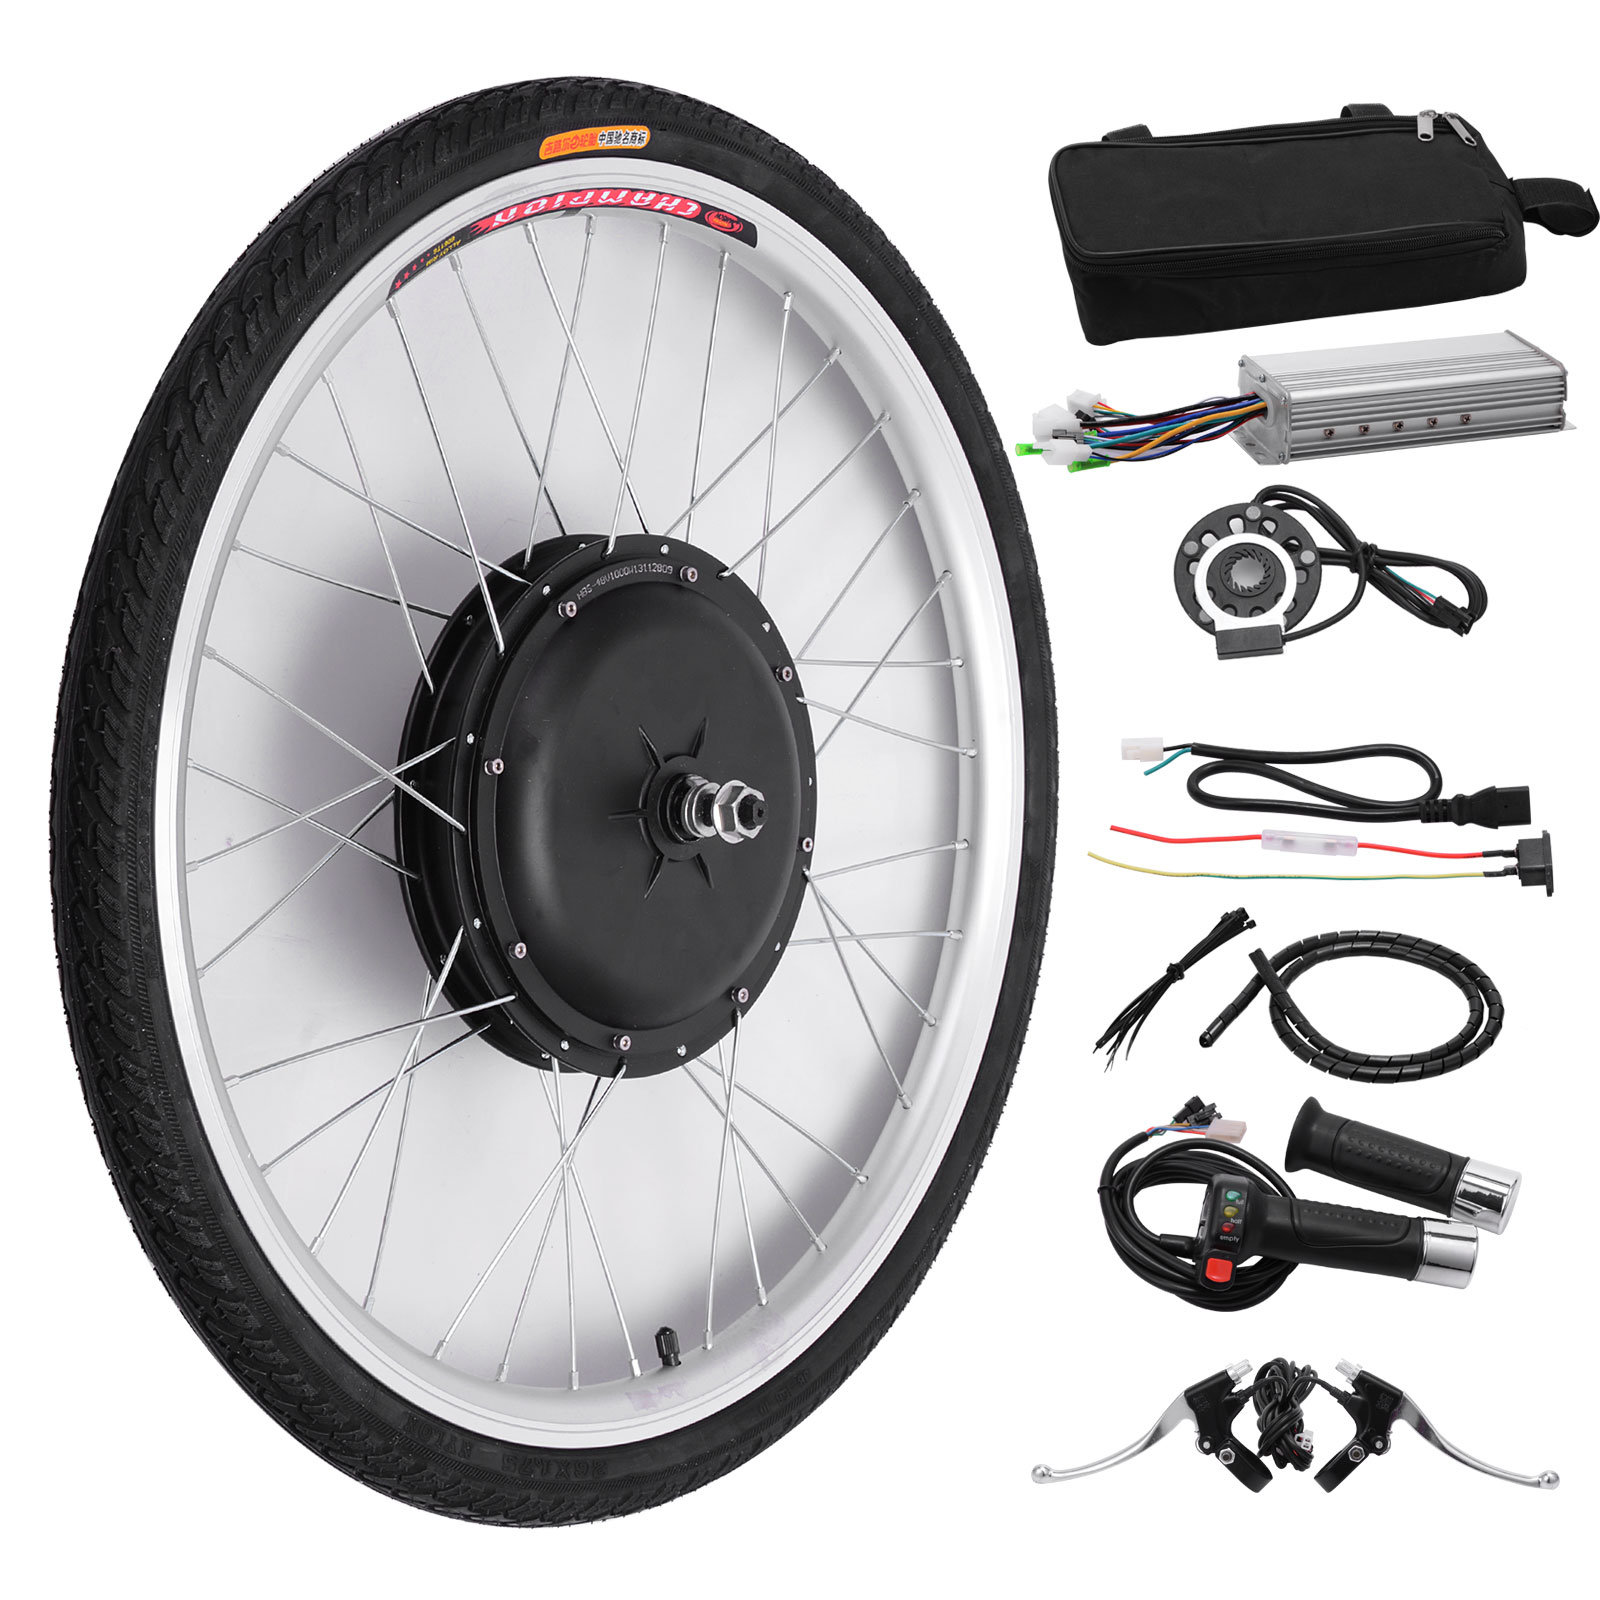 New 26 front wheel 36v 500w electric bicycle motor kit for 500w hub motor kit